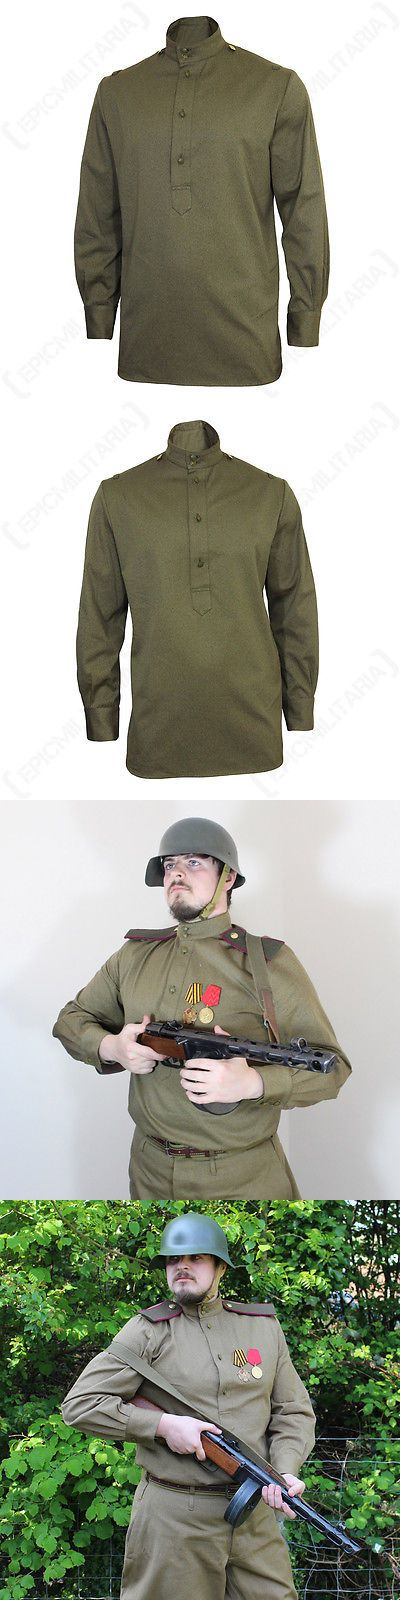 Waist Packs and Bags 181380: Ww2 Russian M43 Gimnasterka Tunic - Repro Soviet Army Military Khaki All Sizes -> BUY IT NOW ONLY: $110.55 on eBay!